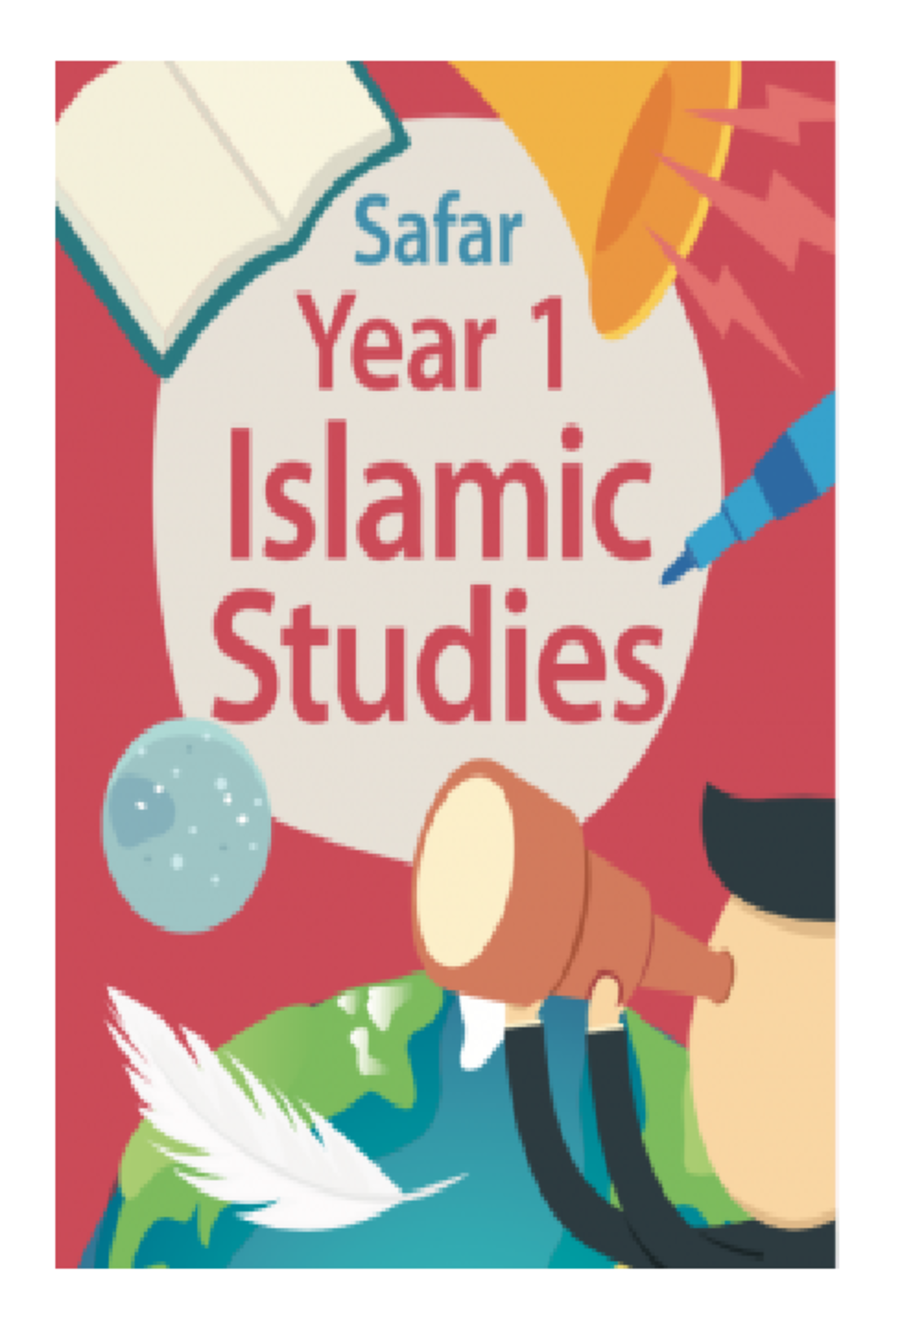 Safar-Year 1- Islamic Studies Book TextBook